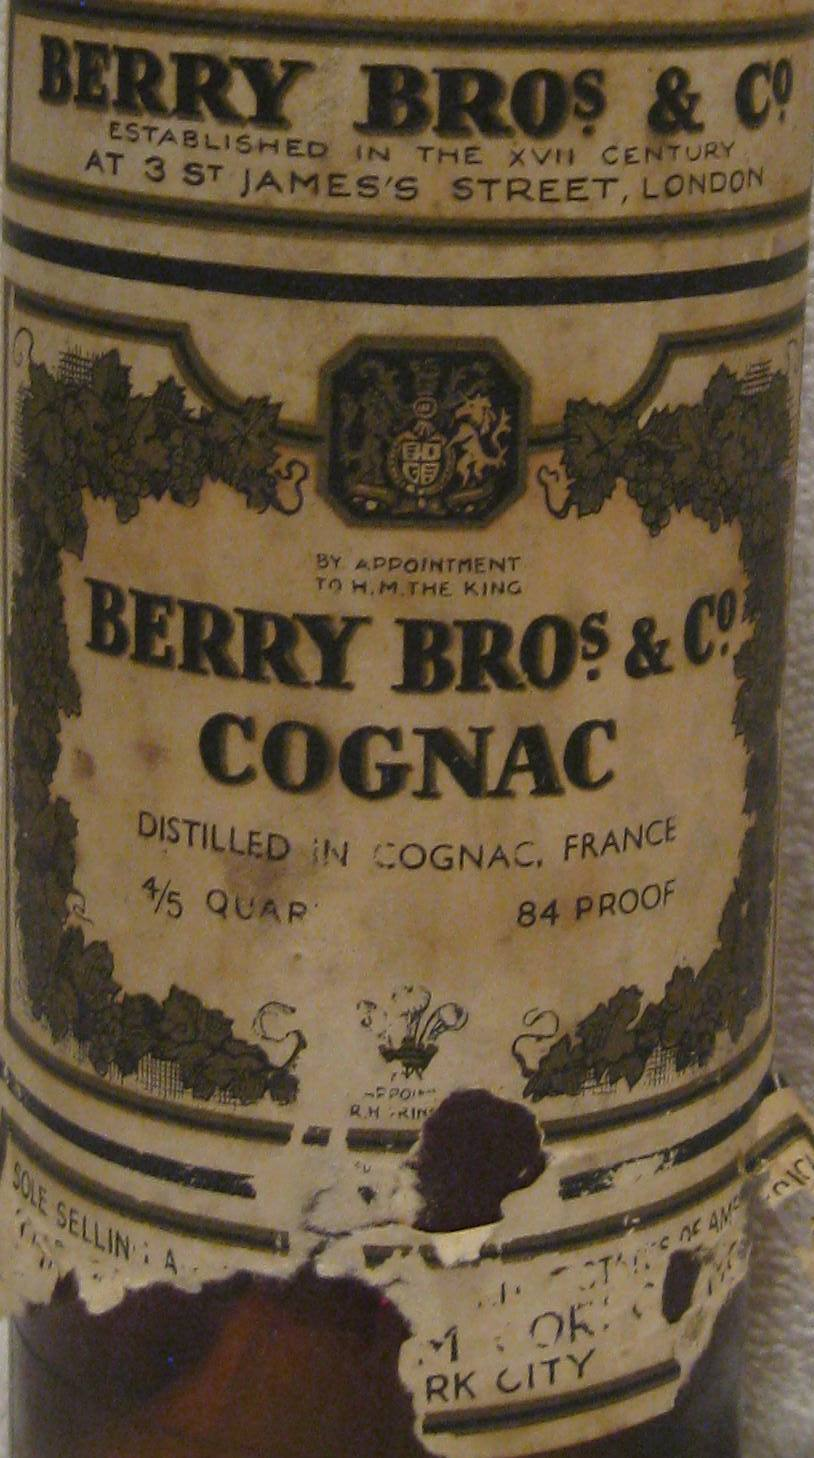 Berry Bros & Co Cognac 84 Proof Bottle